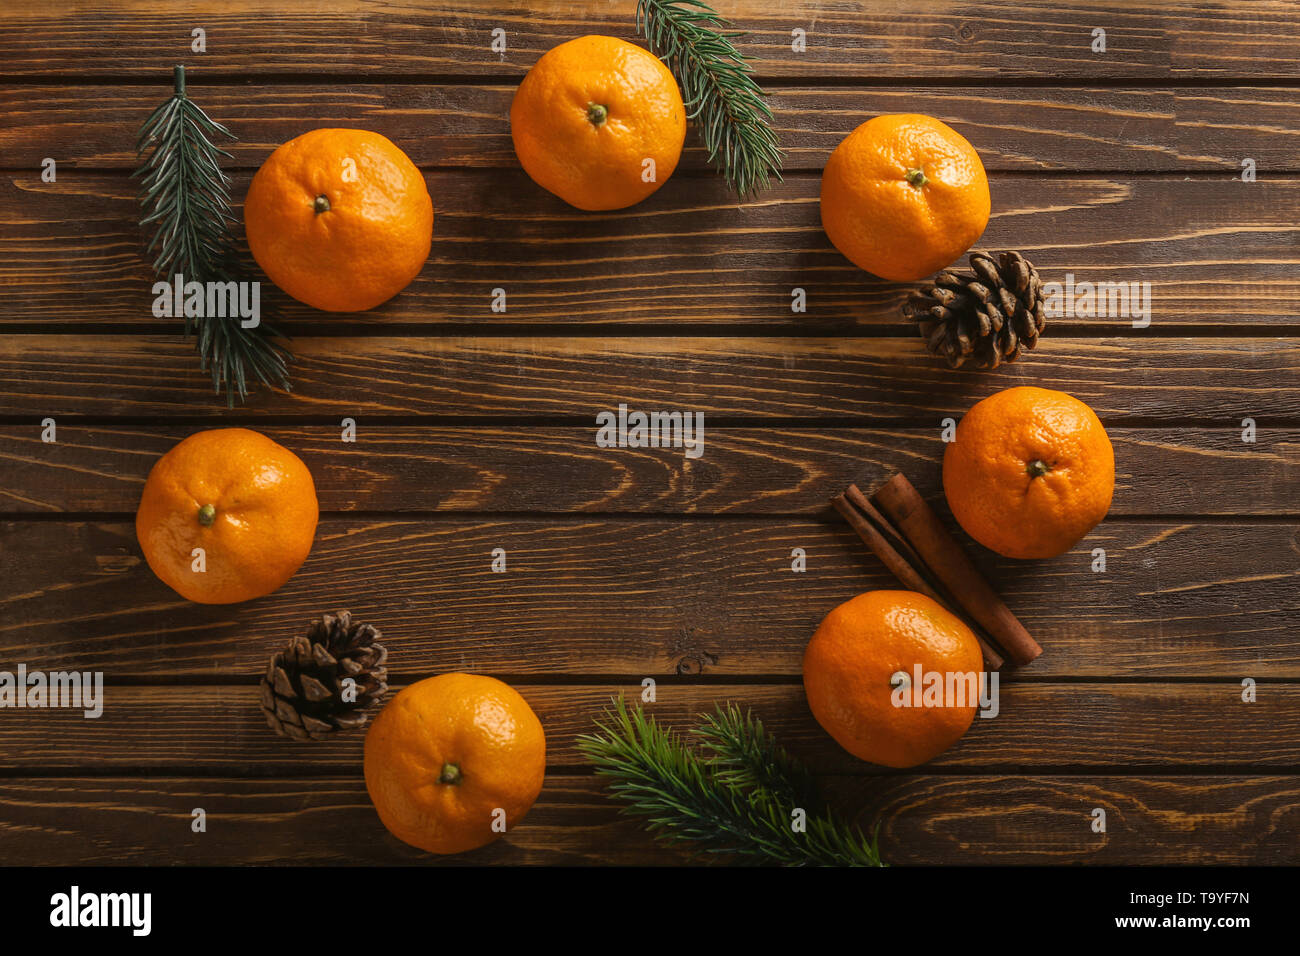 Christmas composition with ripe sweet tangerines on wooden background - Stock Image